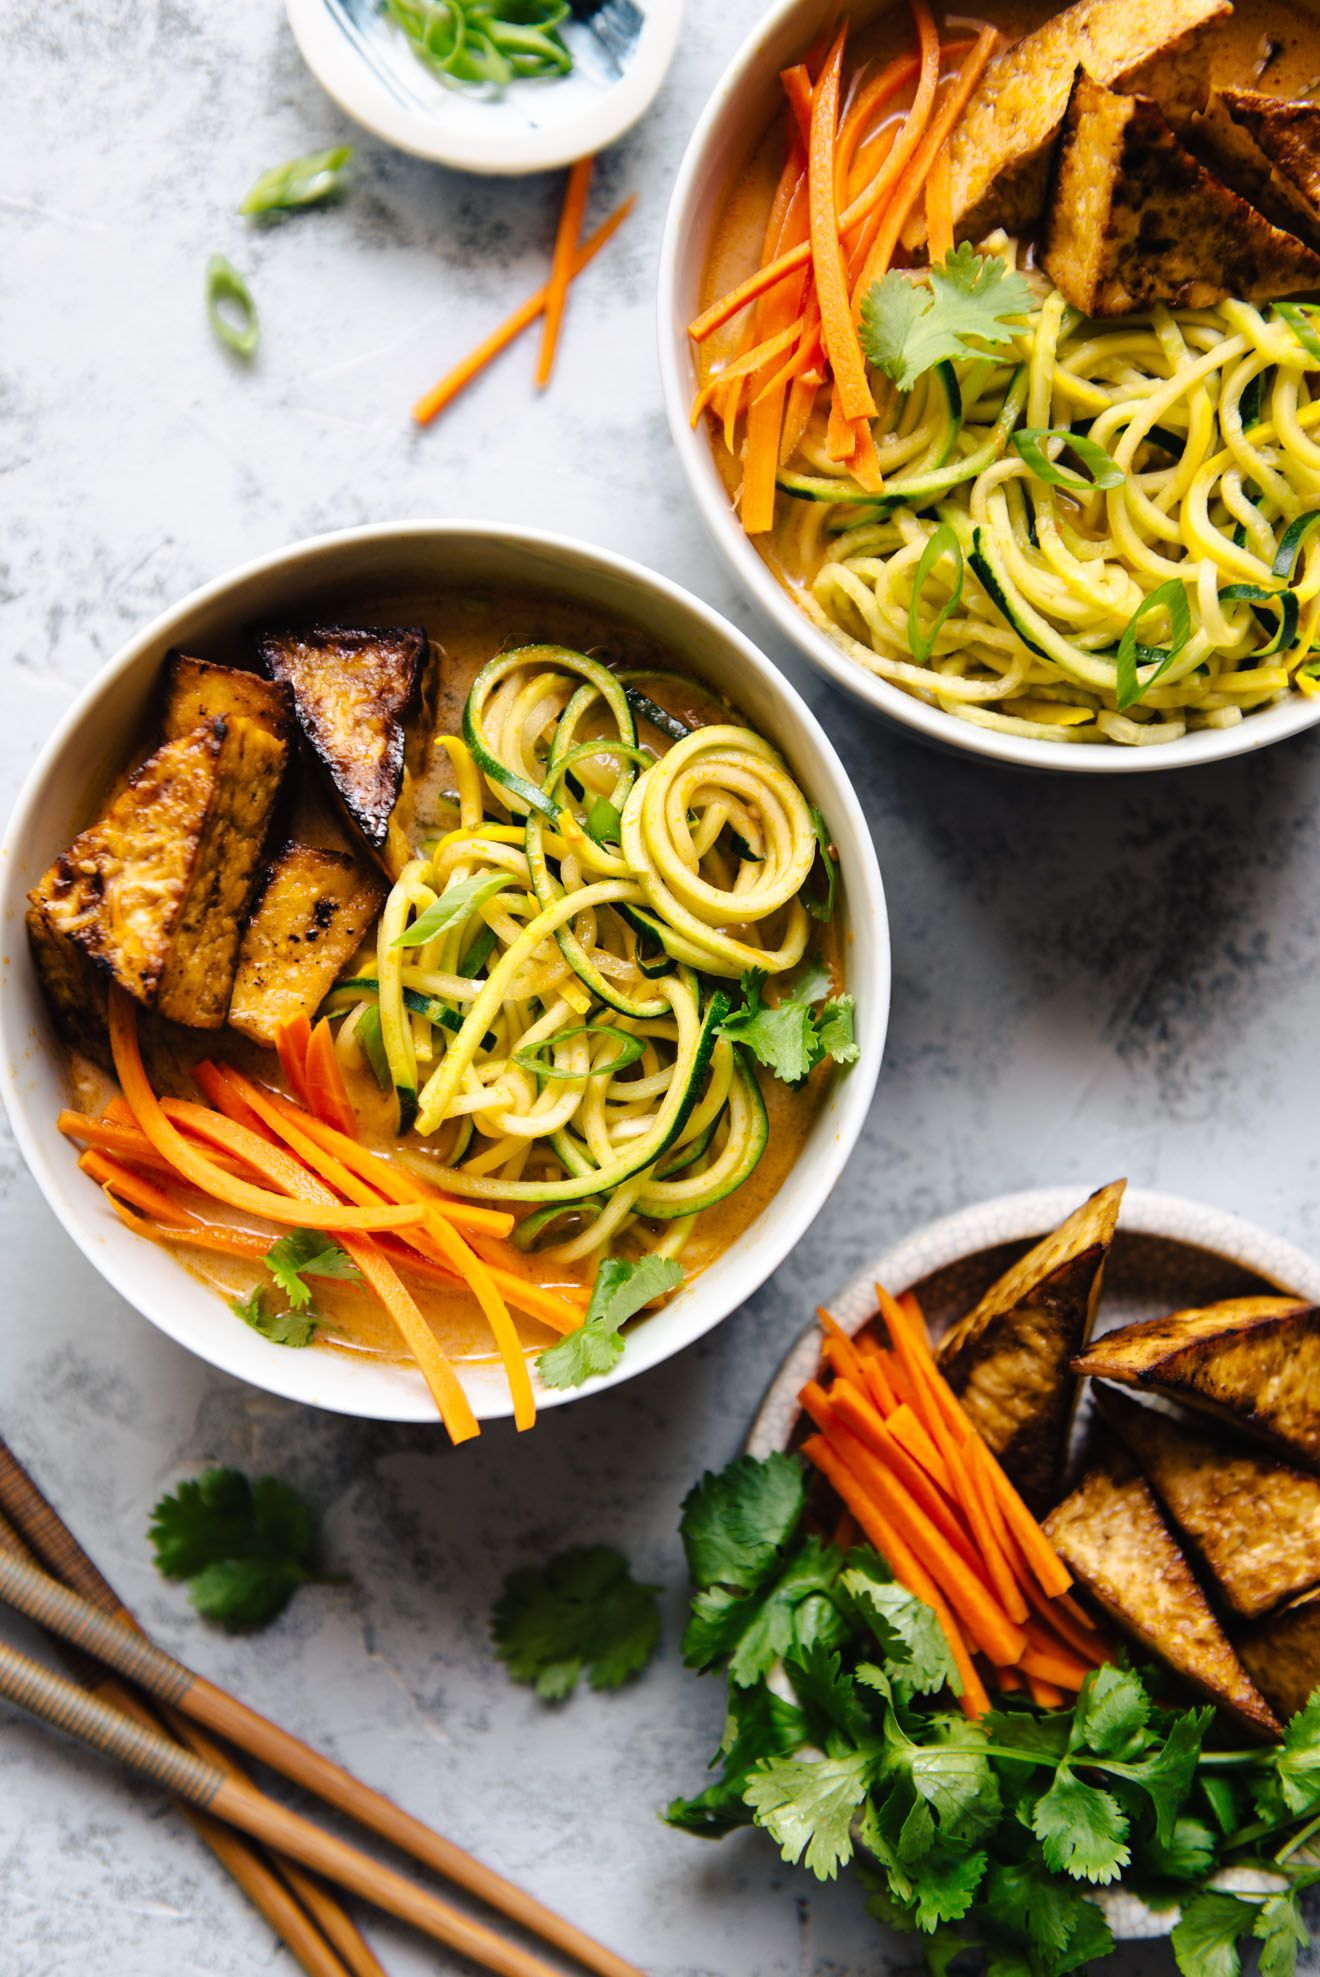 Zucchini Noodles With Tomato Coconut Broth